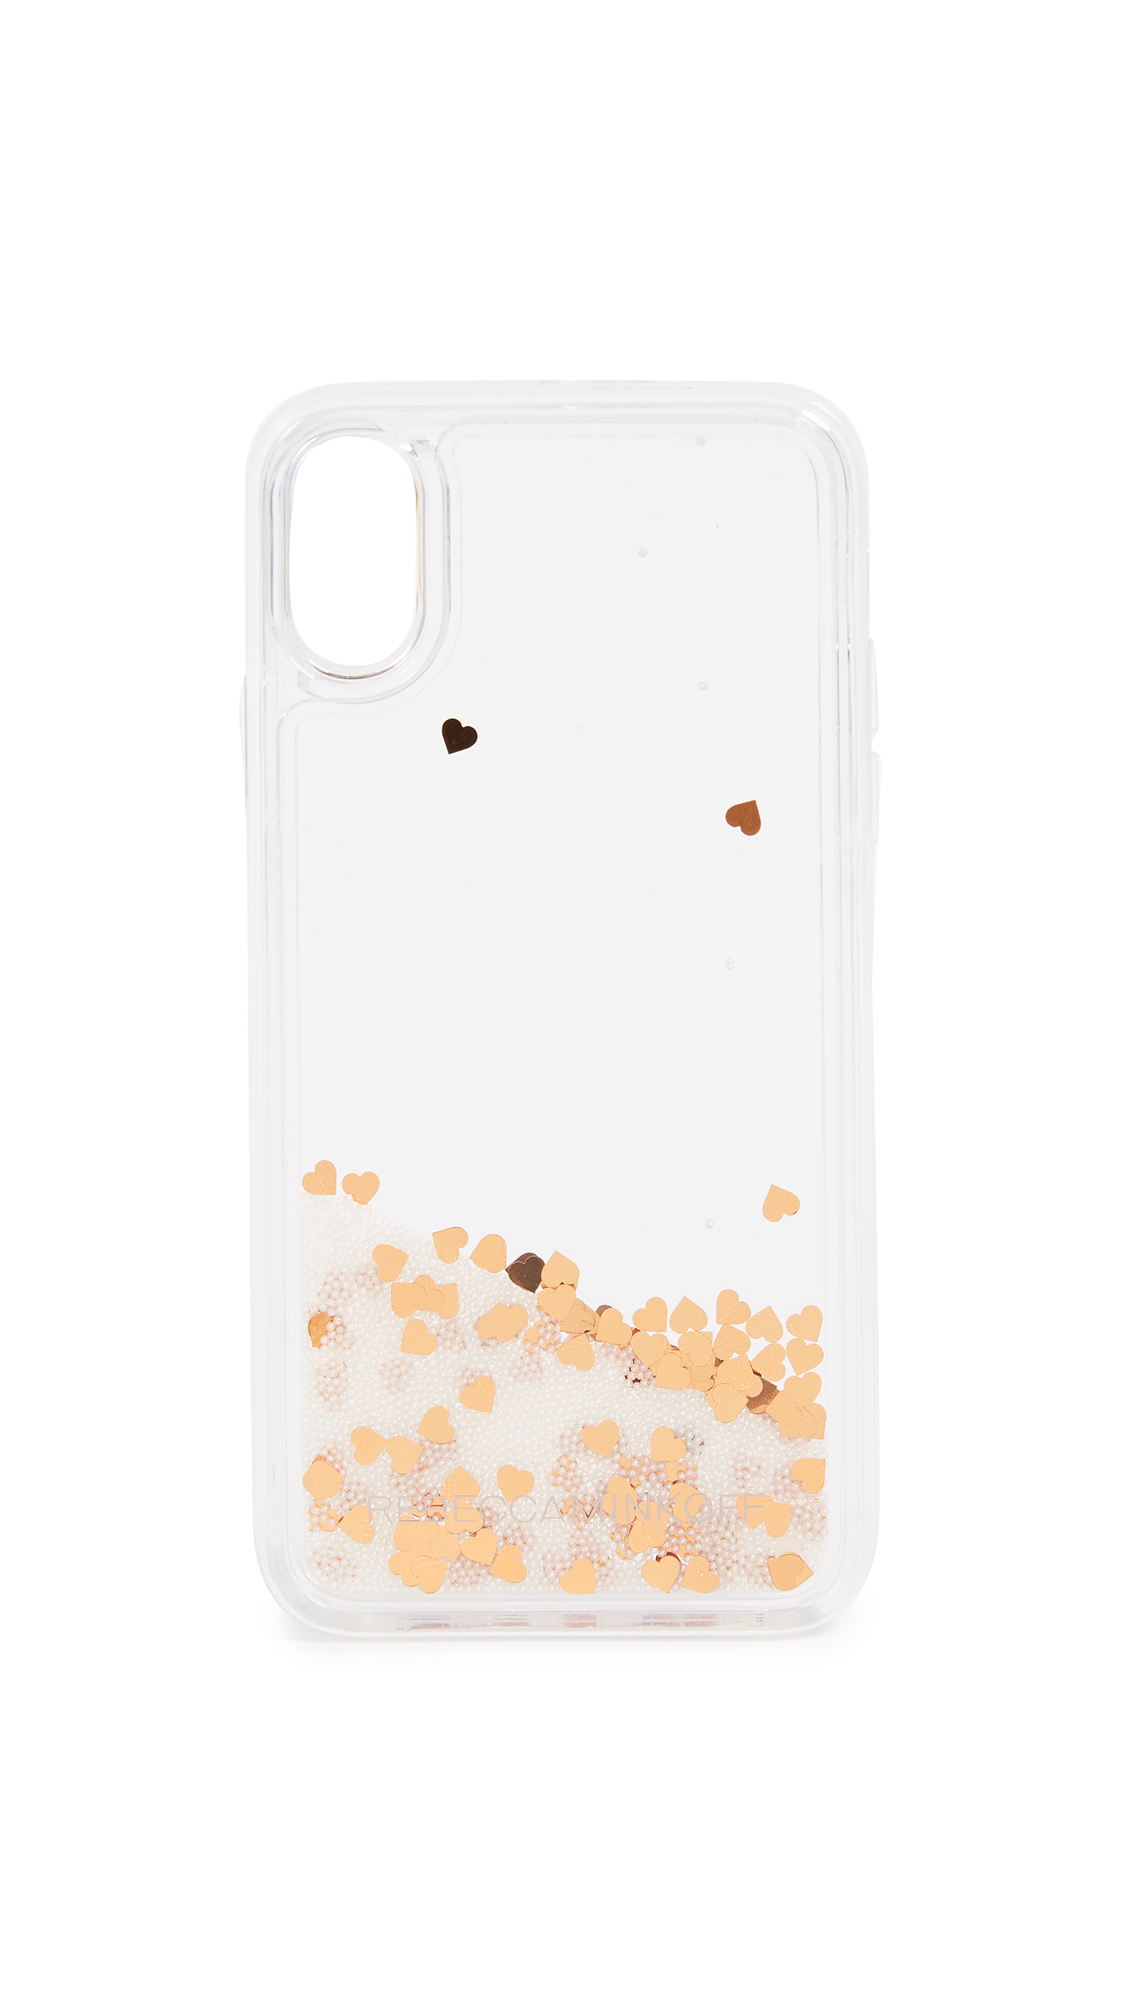 送料・関税込み!!Confetti Hearts Glitterfall iphone ケース